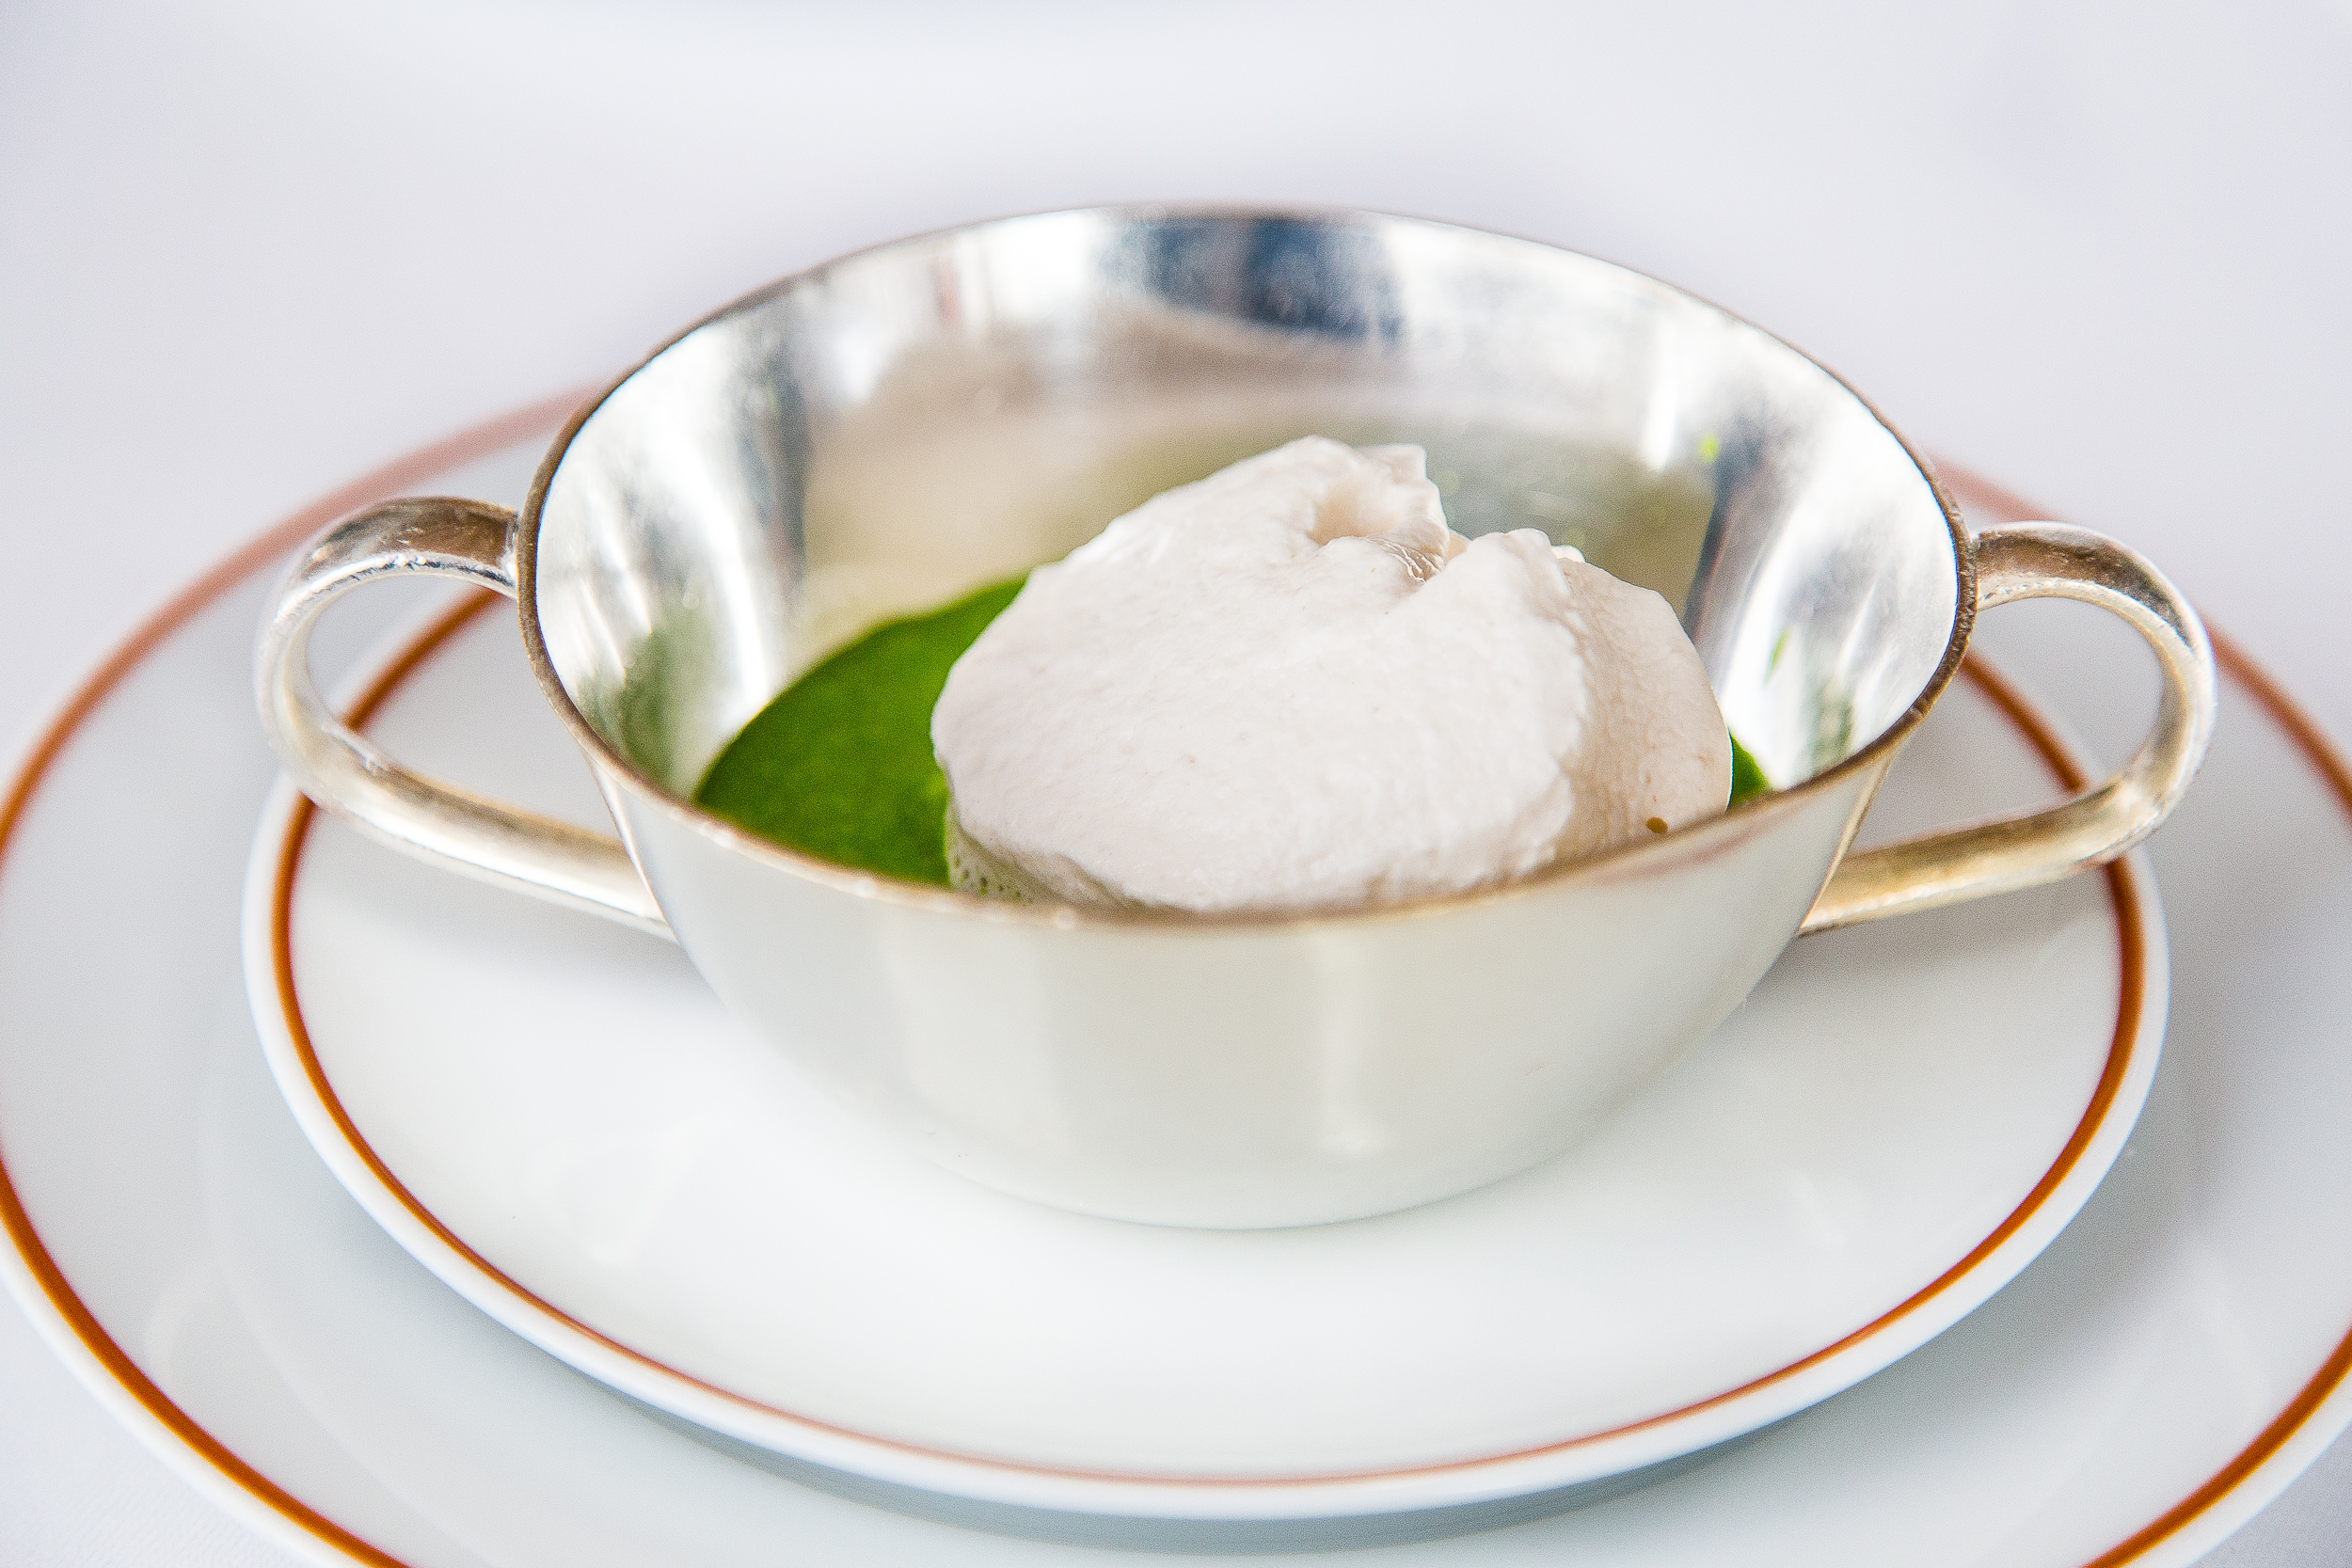 Velouté of Artichoke, Celery, and Fresh Herbs with Egg Cream